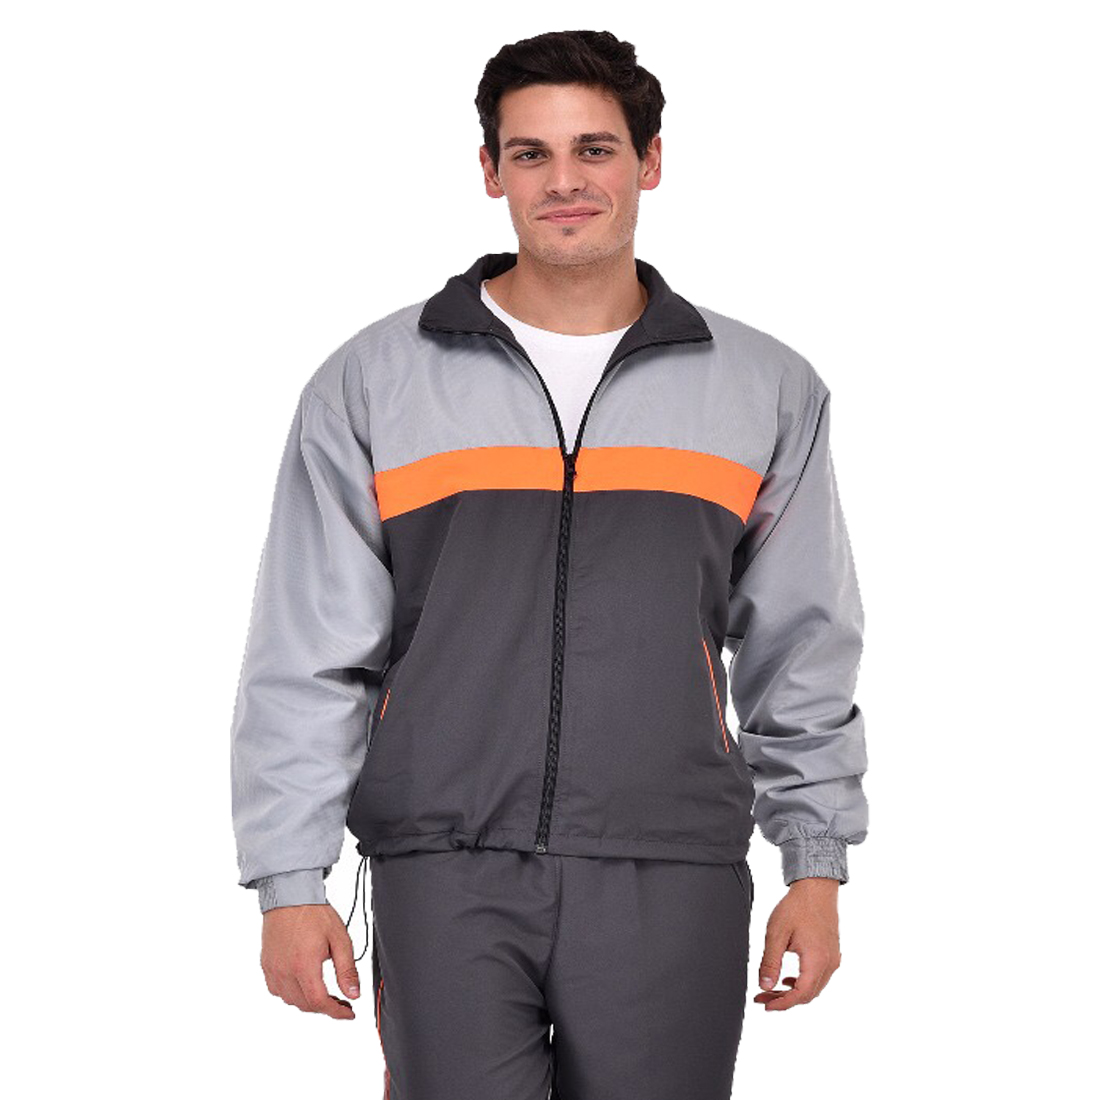 Soccer Jackets Manufacturers, Wholesale Suppliers